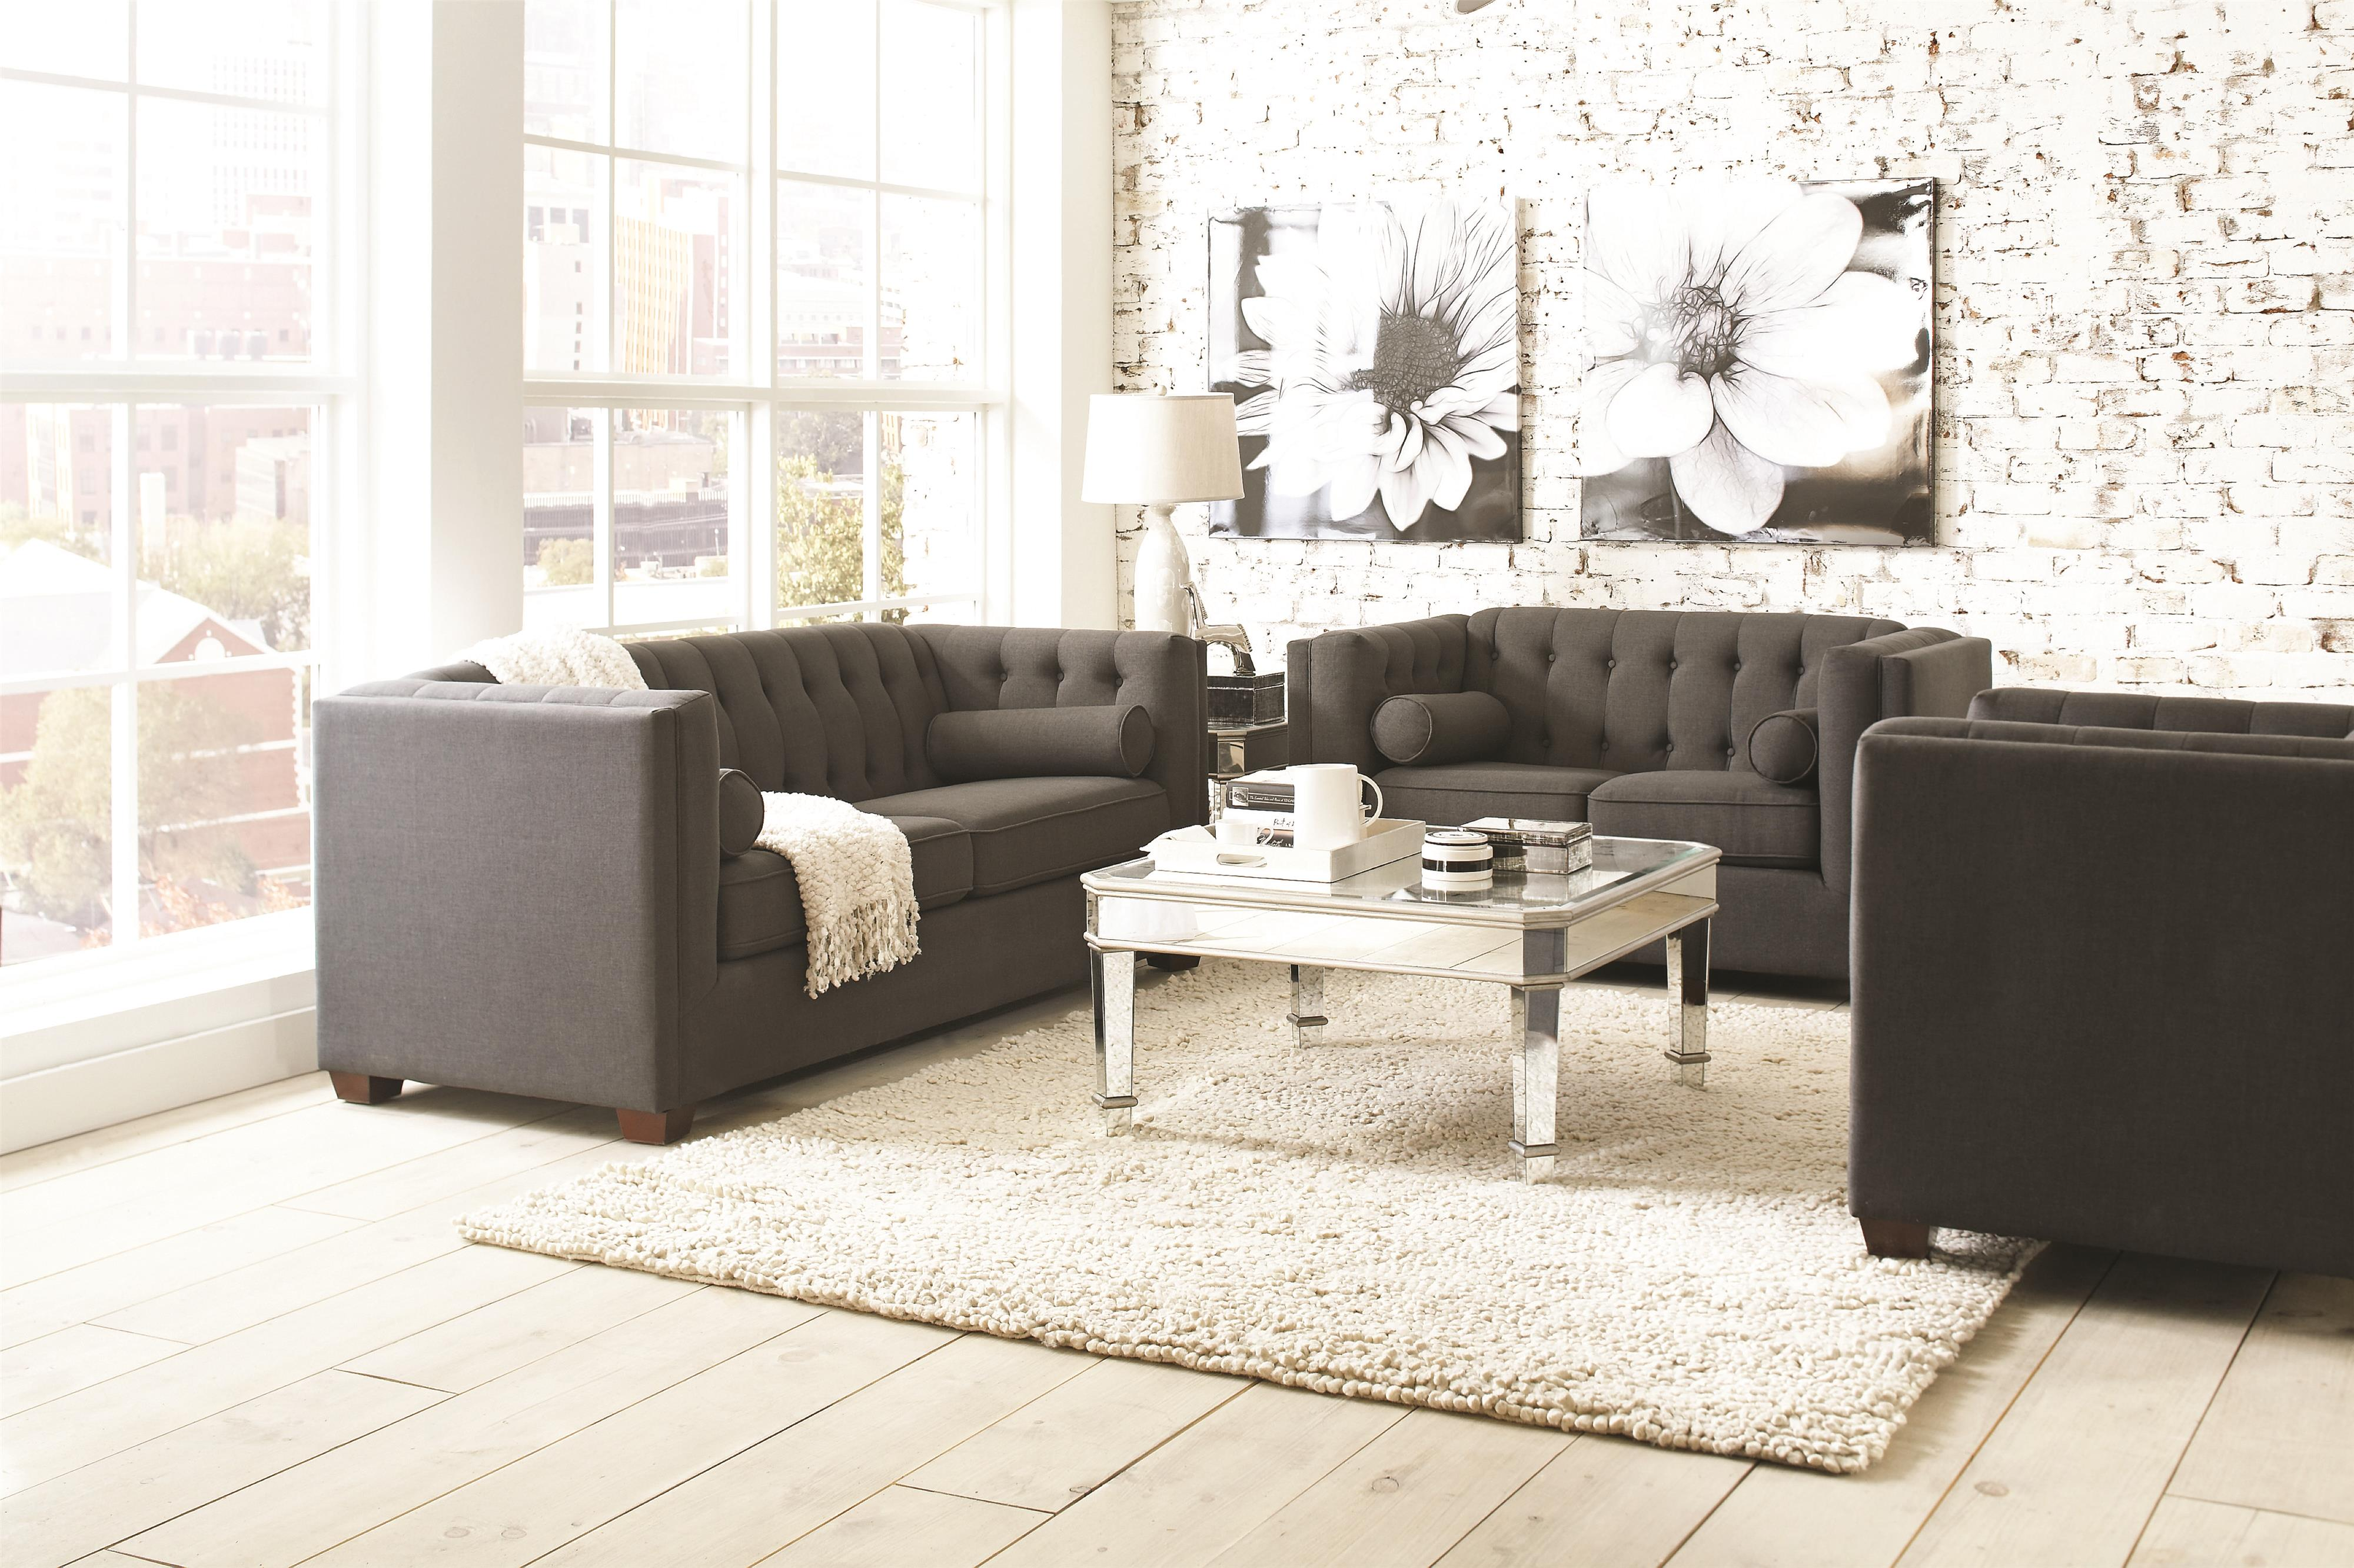 Coaster Cairns 504901 Sofa | Northeast Factory Direct | Sofas ...